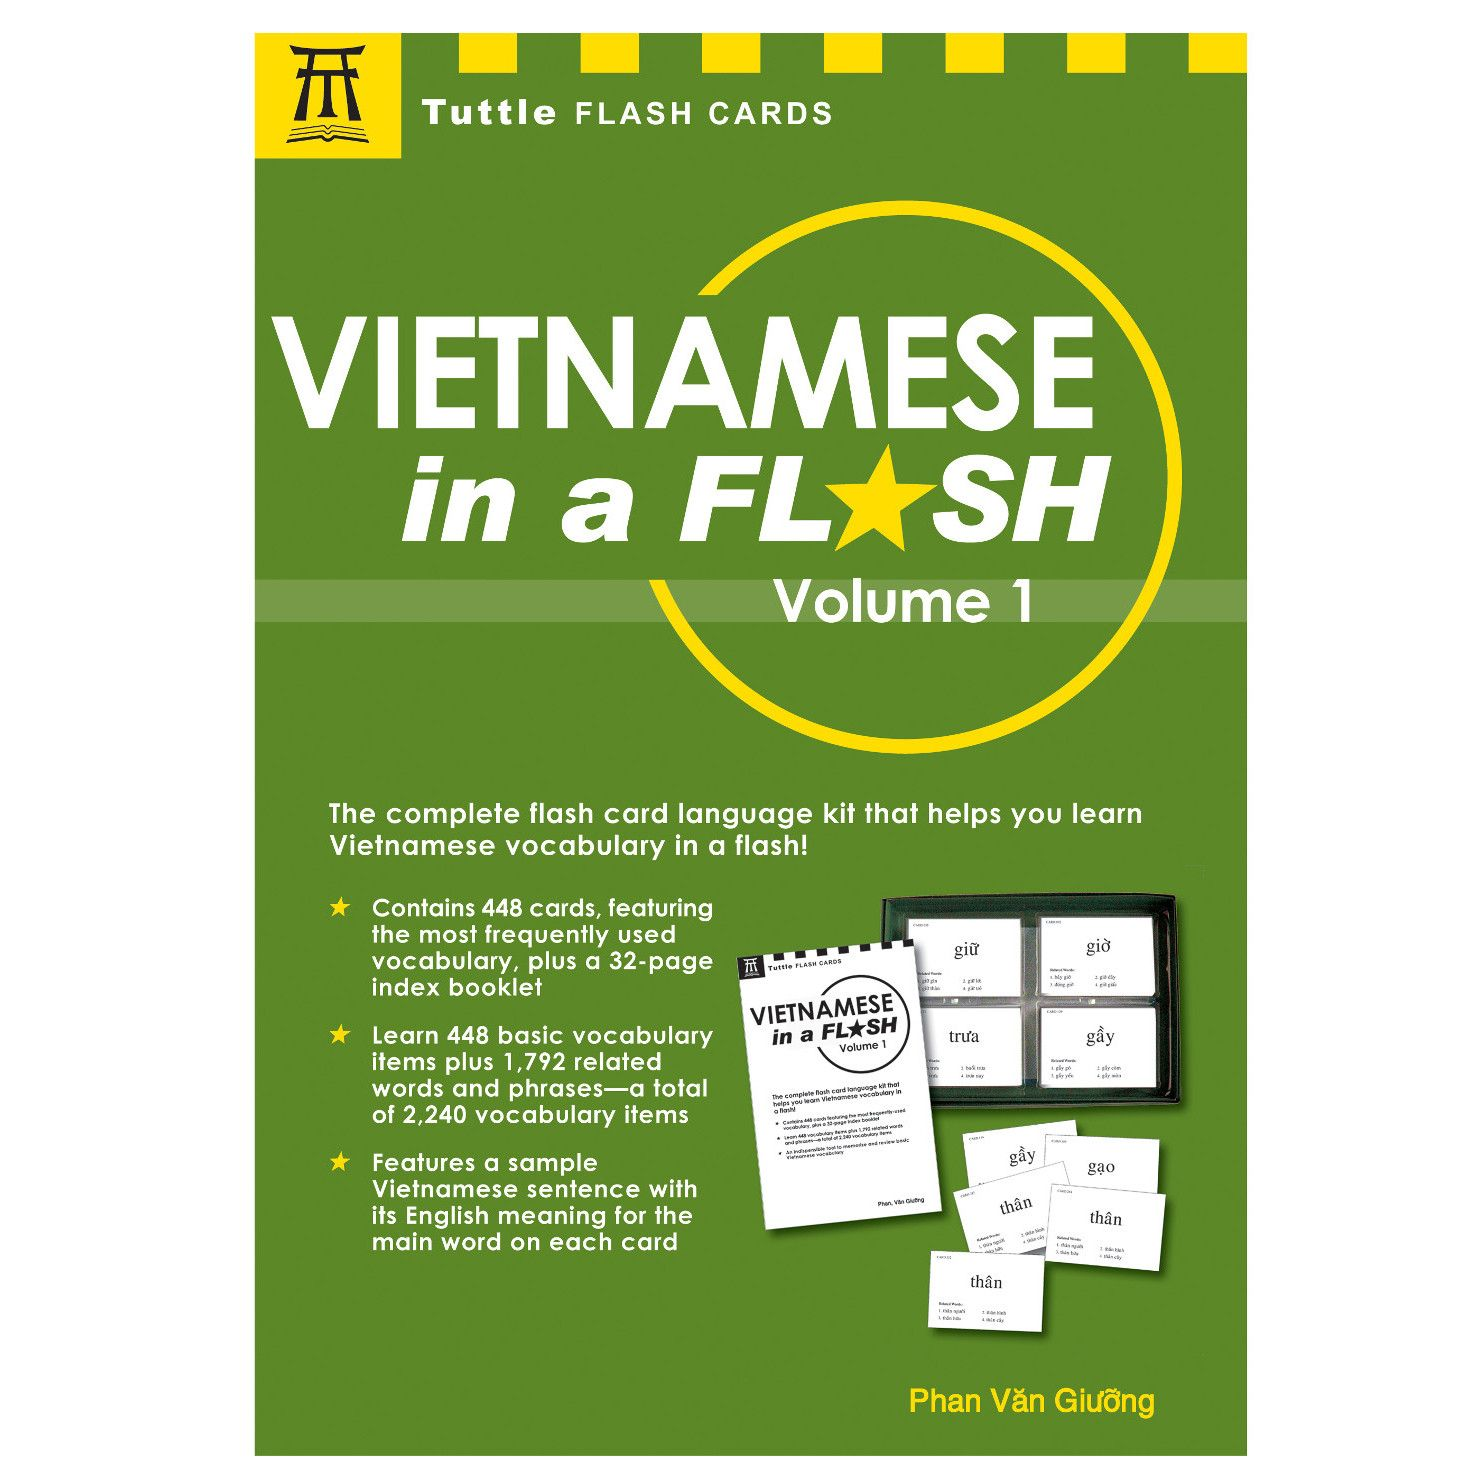 With a full range of features to help beginners and intermediate learners, these Vietnamese flash cards are an excellent learning tool for anyone who wants to learn Vietnamese vocabulary and master the Vietnamese language. Containing 448 flash cards of the most commonly used Vietnamese words and phrases, along with sample sentences, handy indexes and a guide to using the cards for most effective learning, Vietnamese in a Flash Volume 1 delivers.